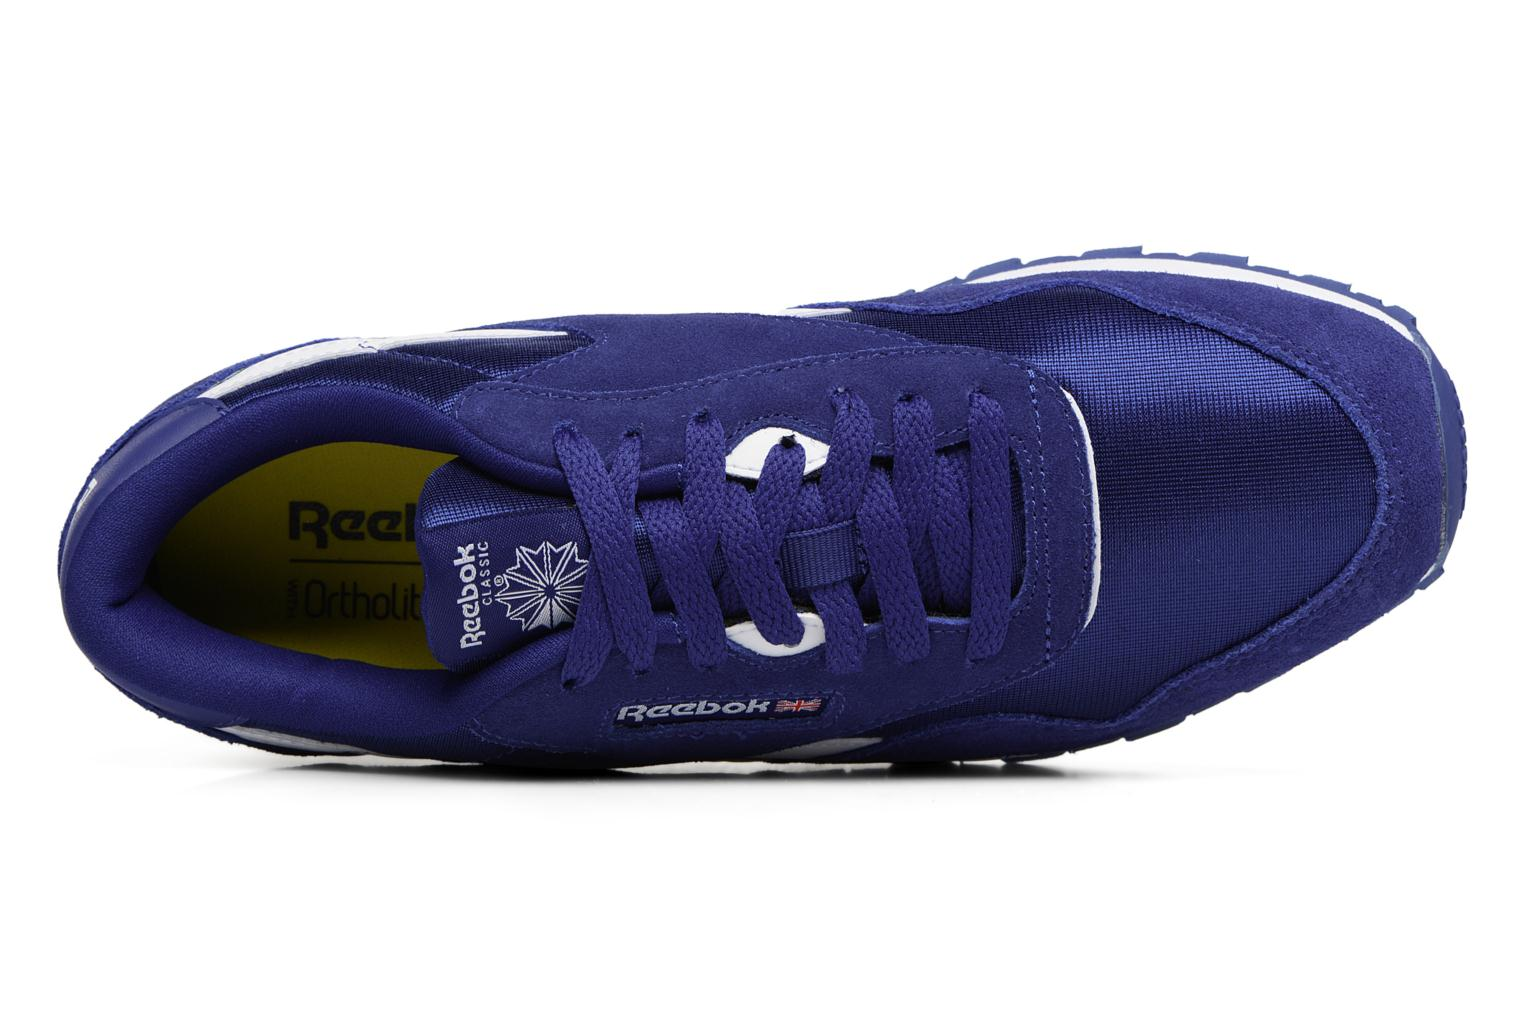 CL NYLON 1 DEEP COBALT/WHITE